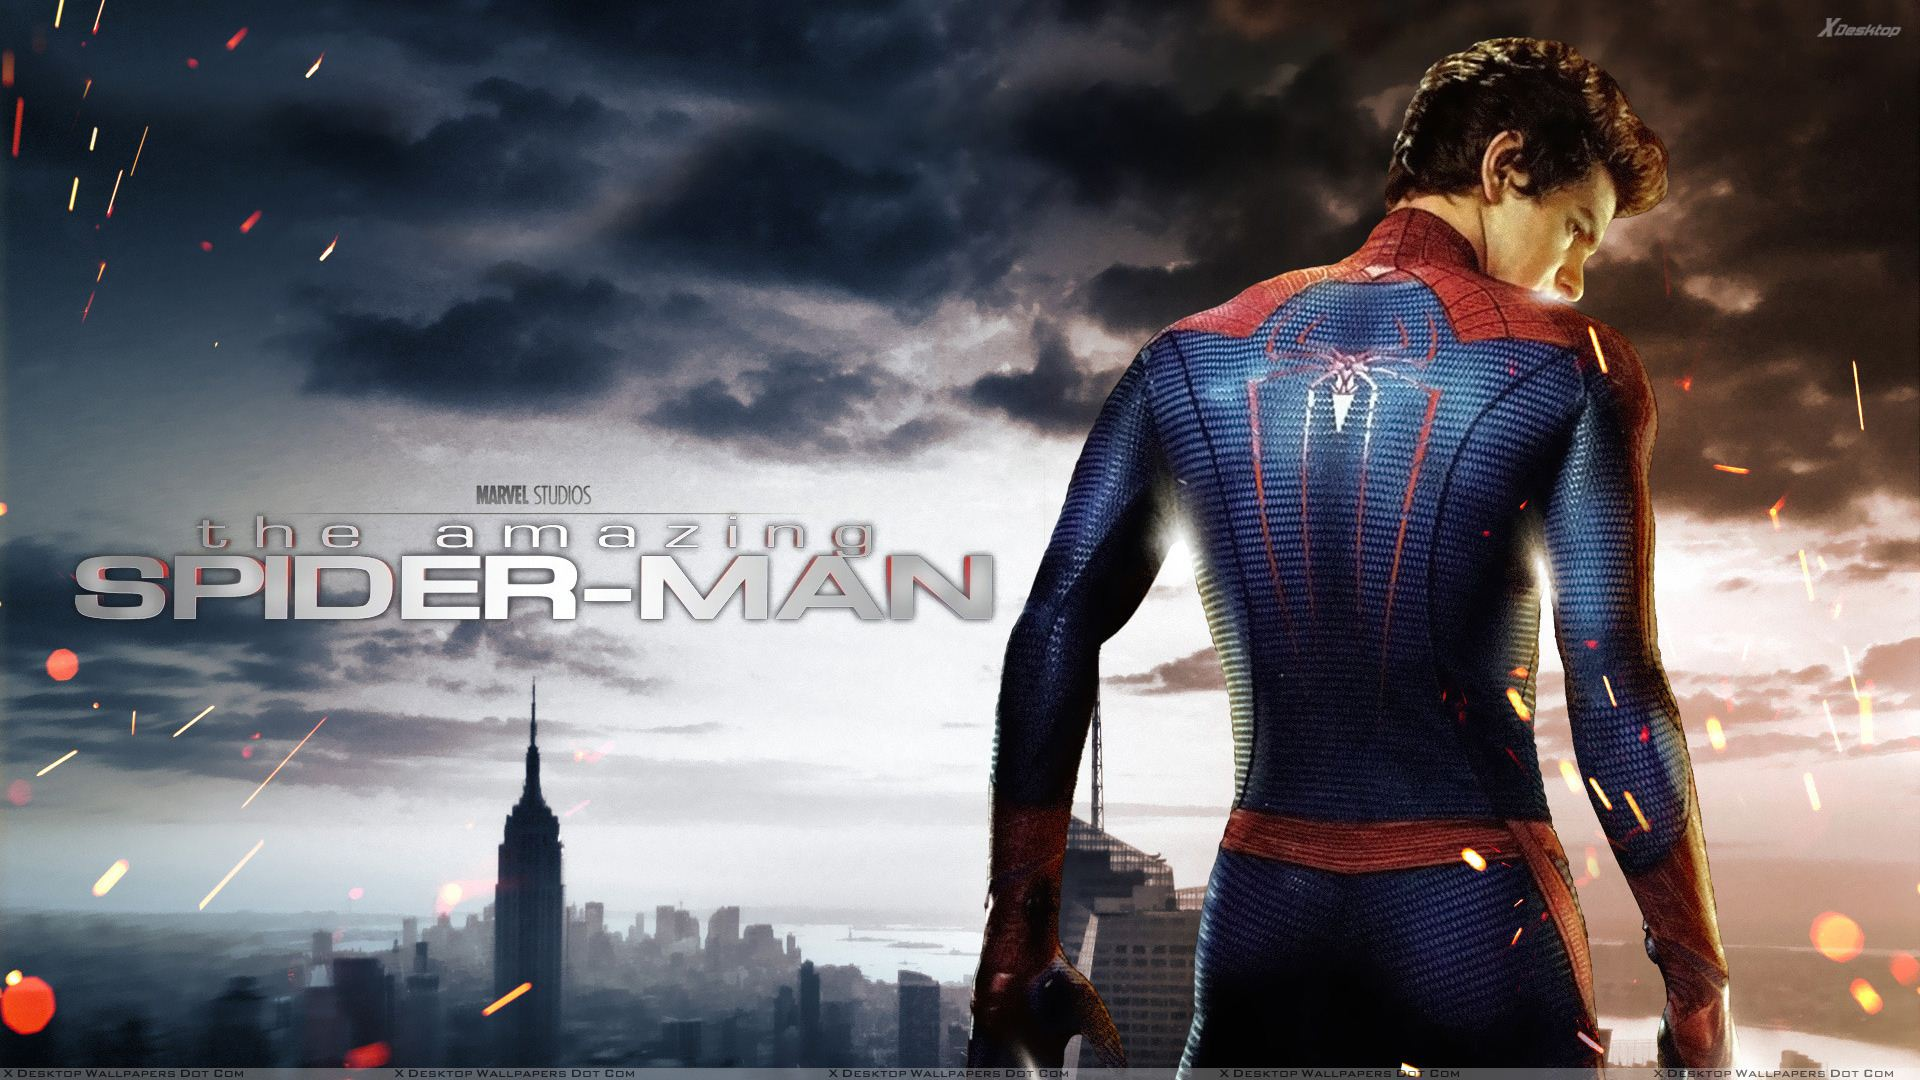 The Amazing Spider-Man Wallpapers, Photos & Images in HD